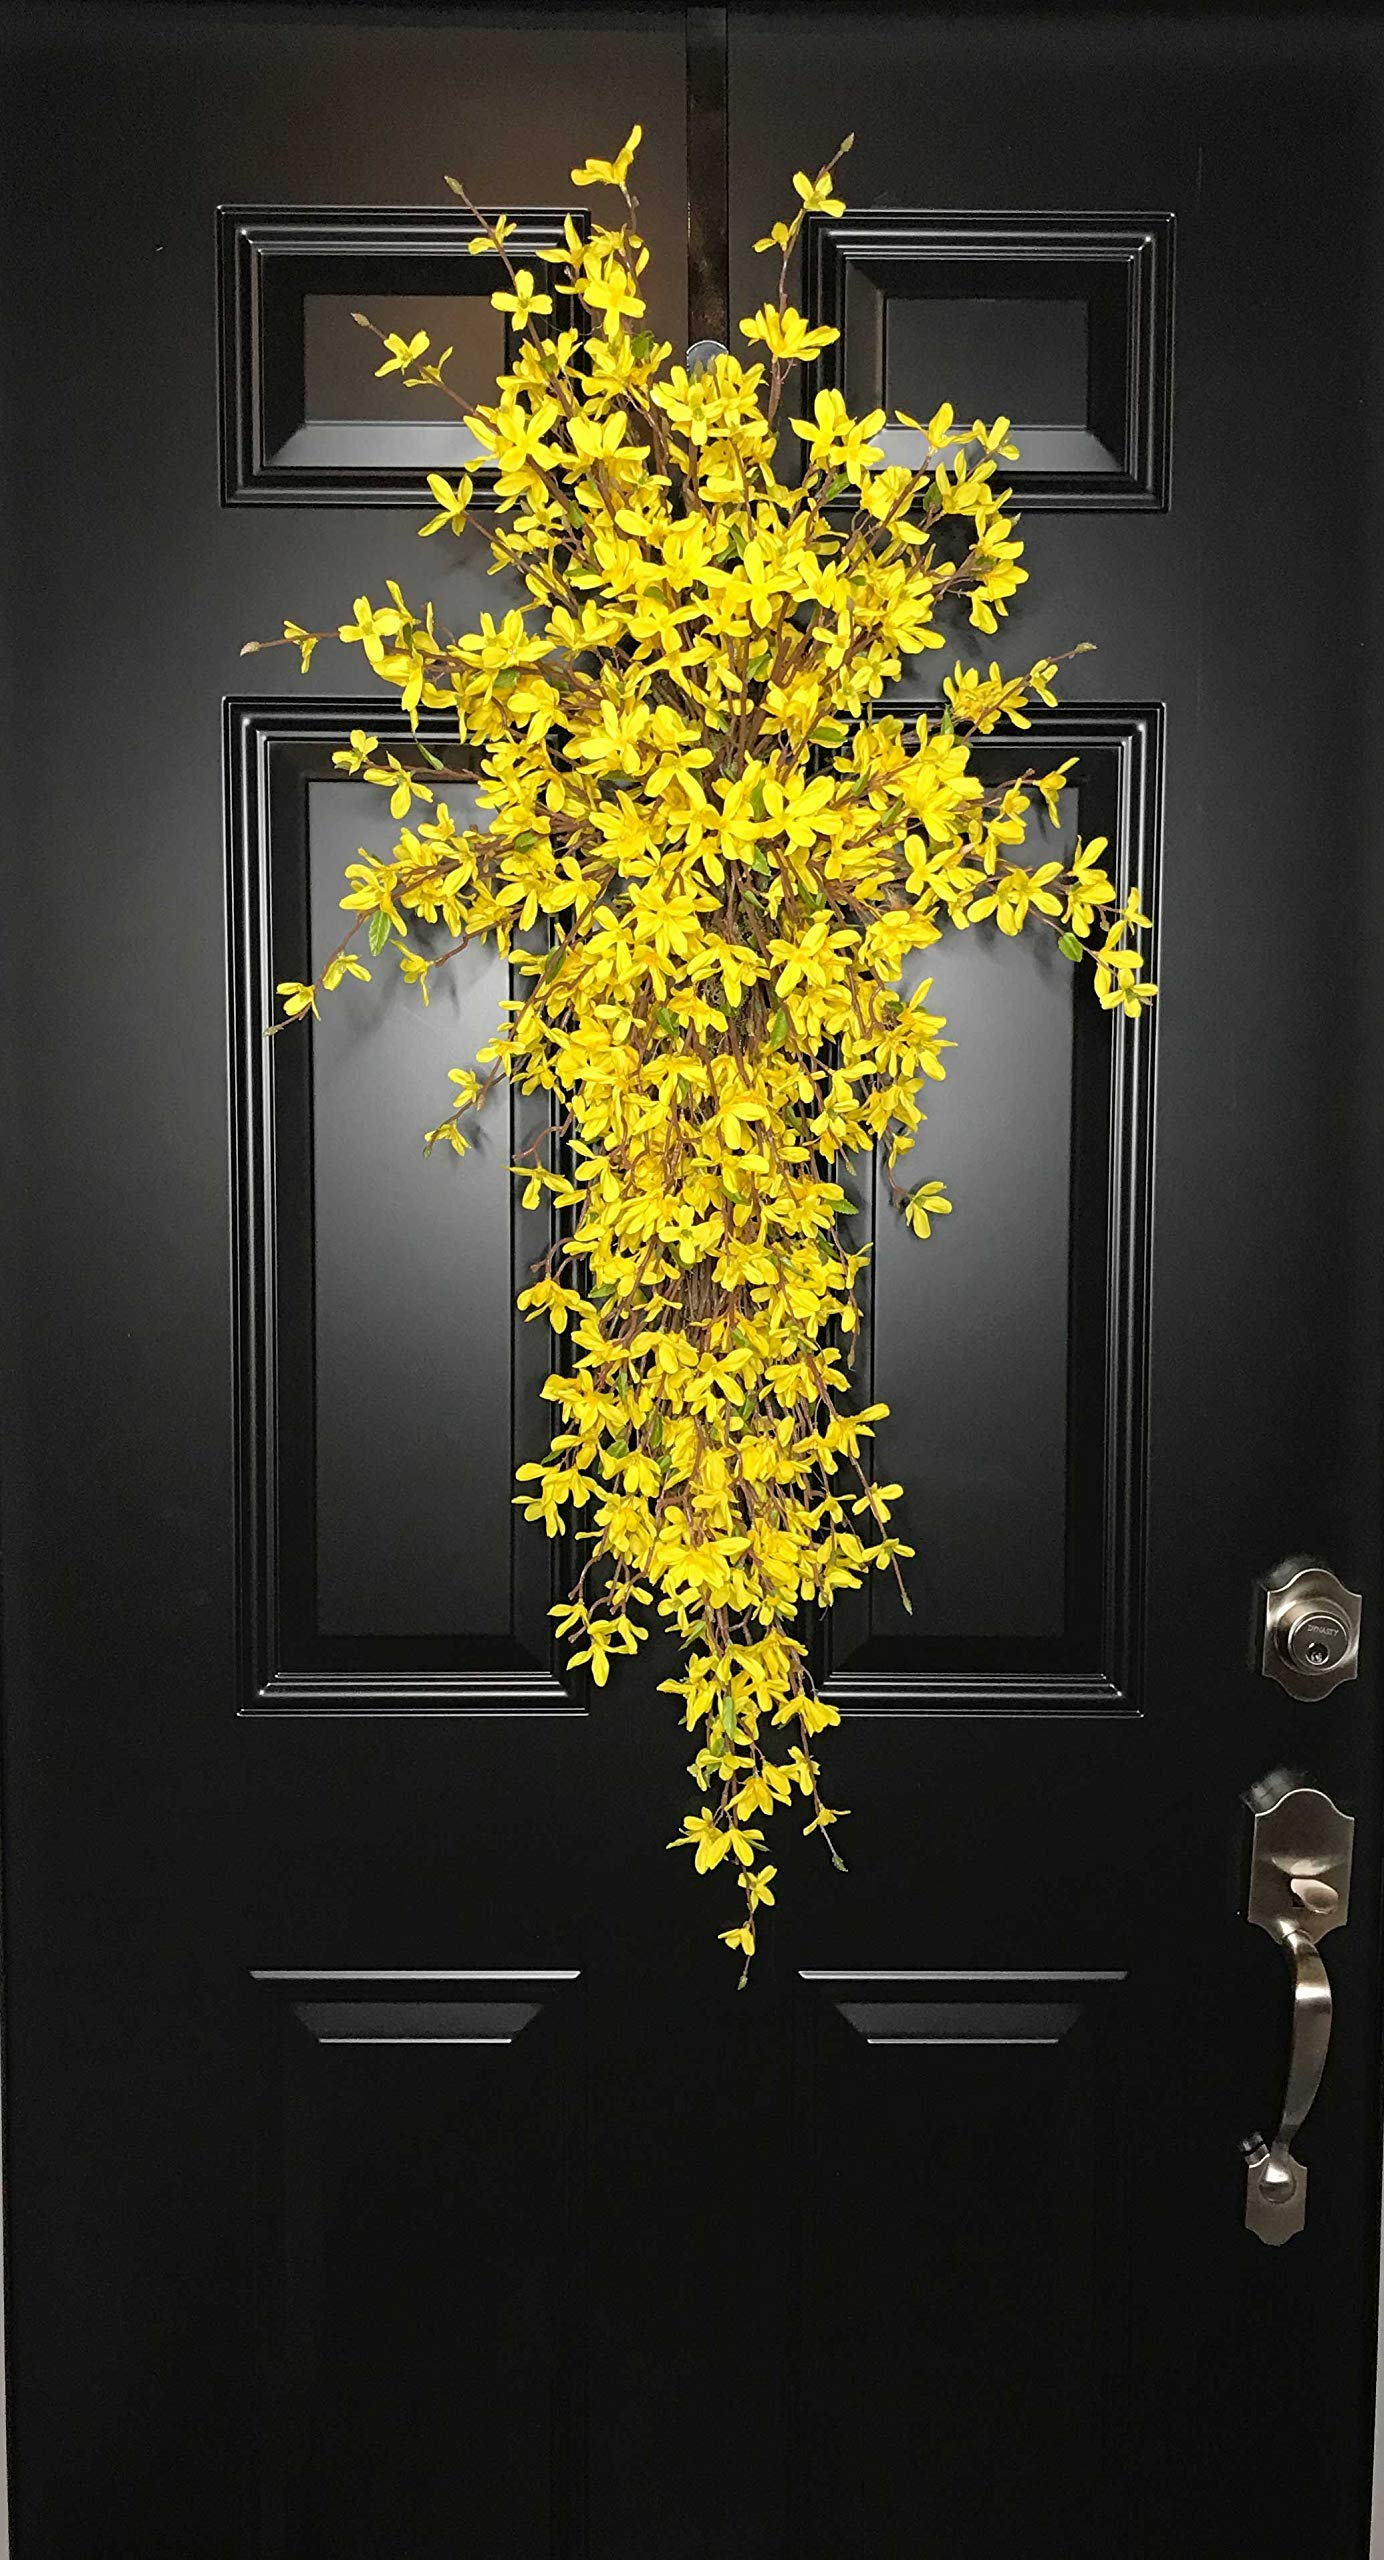 Extra Large Forsythia Floral Teardrop Swag Wreath for Front Door Porch Indoor Wall Farmhouse Decor Spring Springtime Summer Summertime Mother's Day Easter, Handmade, Yellow, 3 Sizes-42'', 36'', 30'' L by Wreath and Vine, LLC (Image #2)